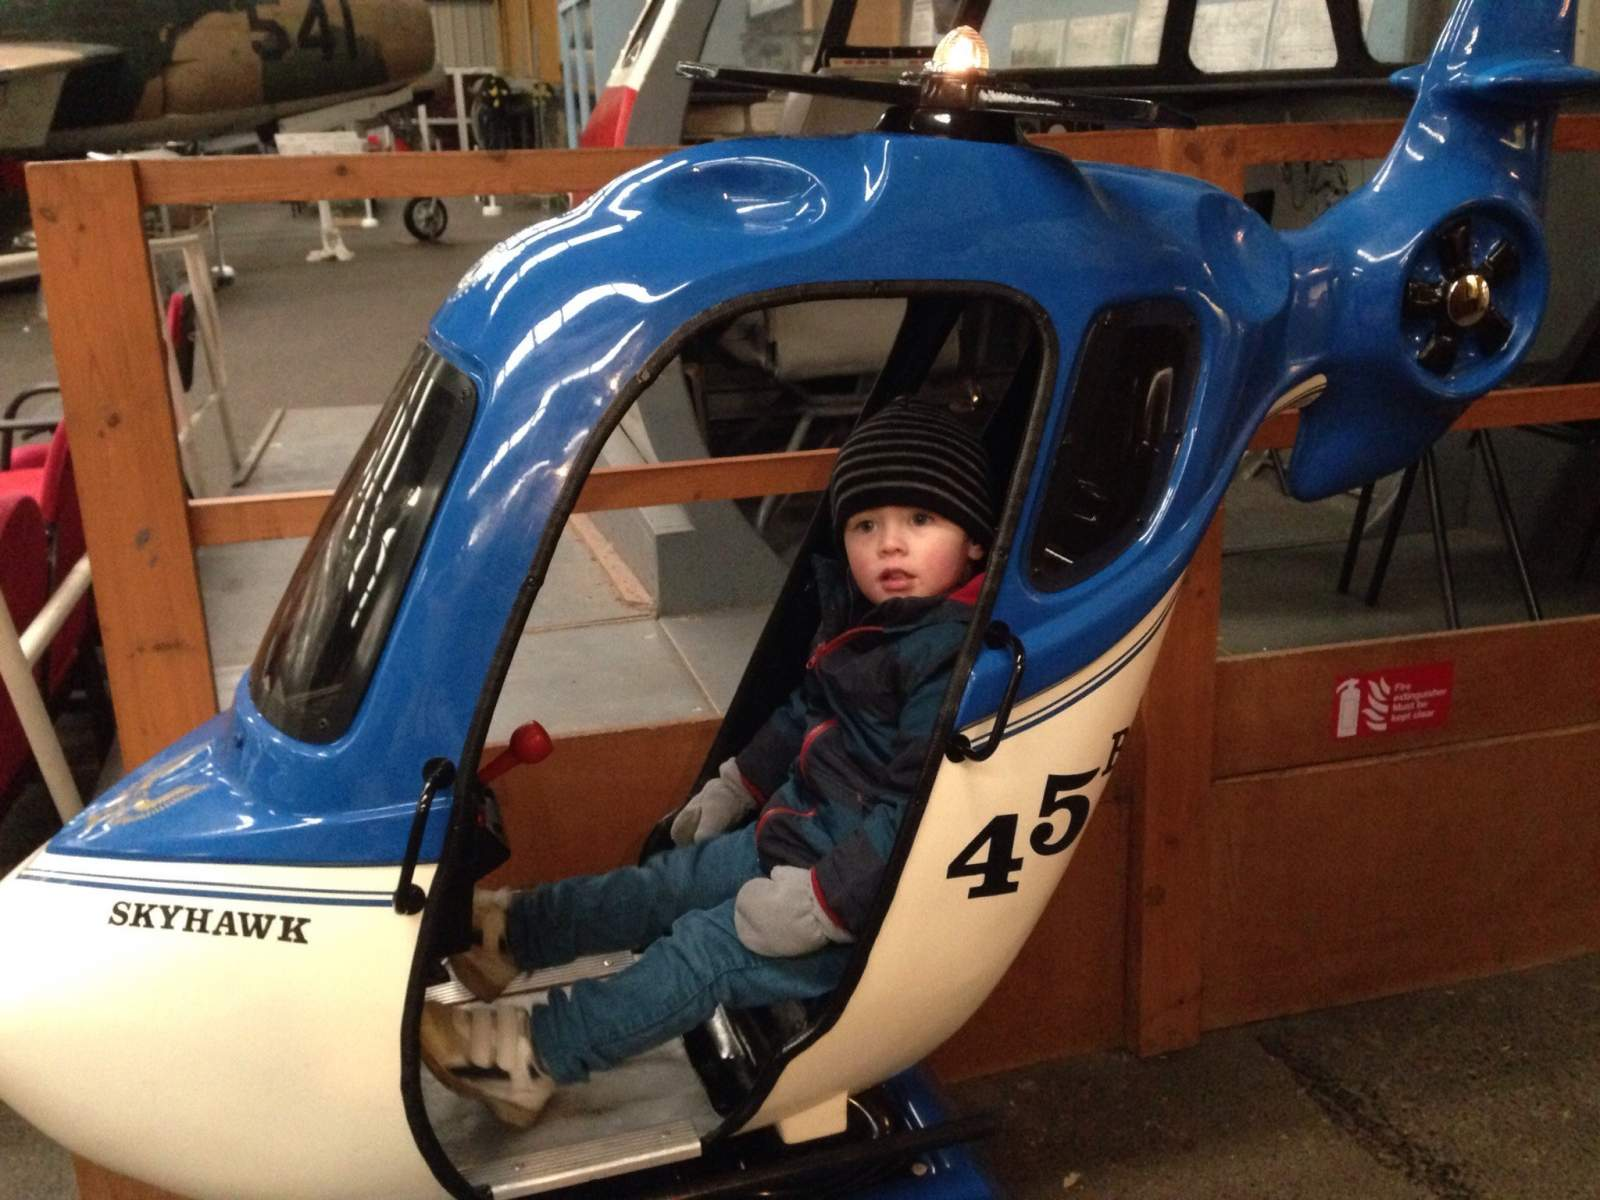 sunderland air museum day out with a toddler helicopter ride